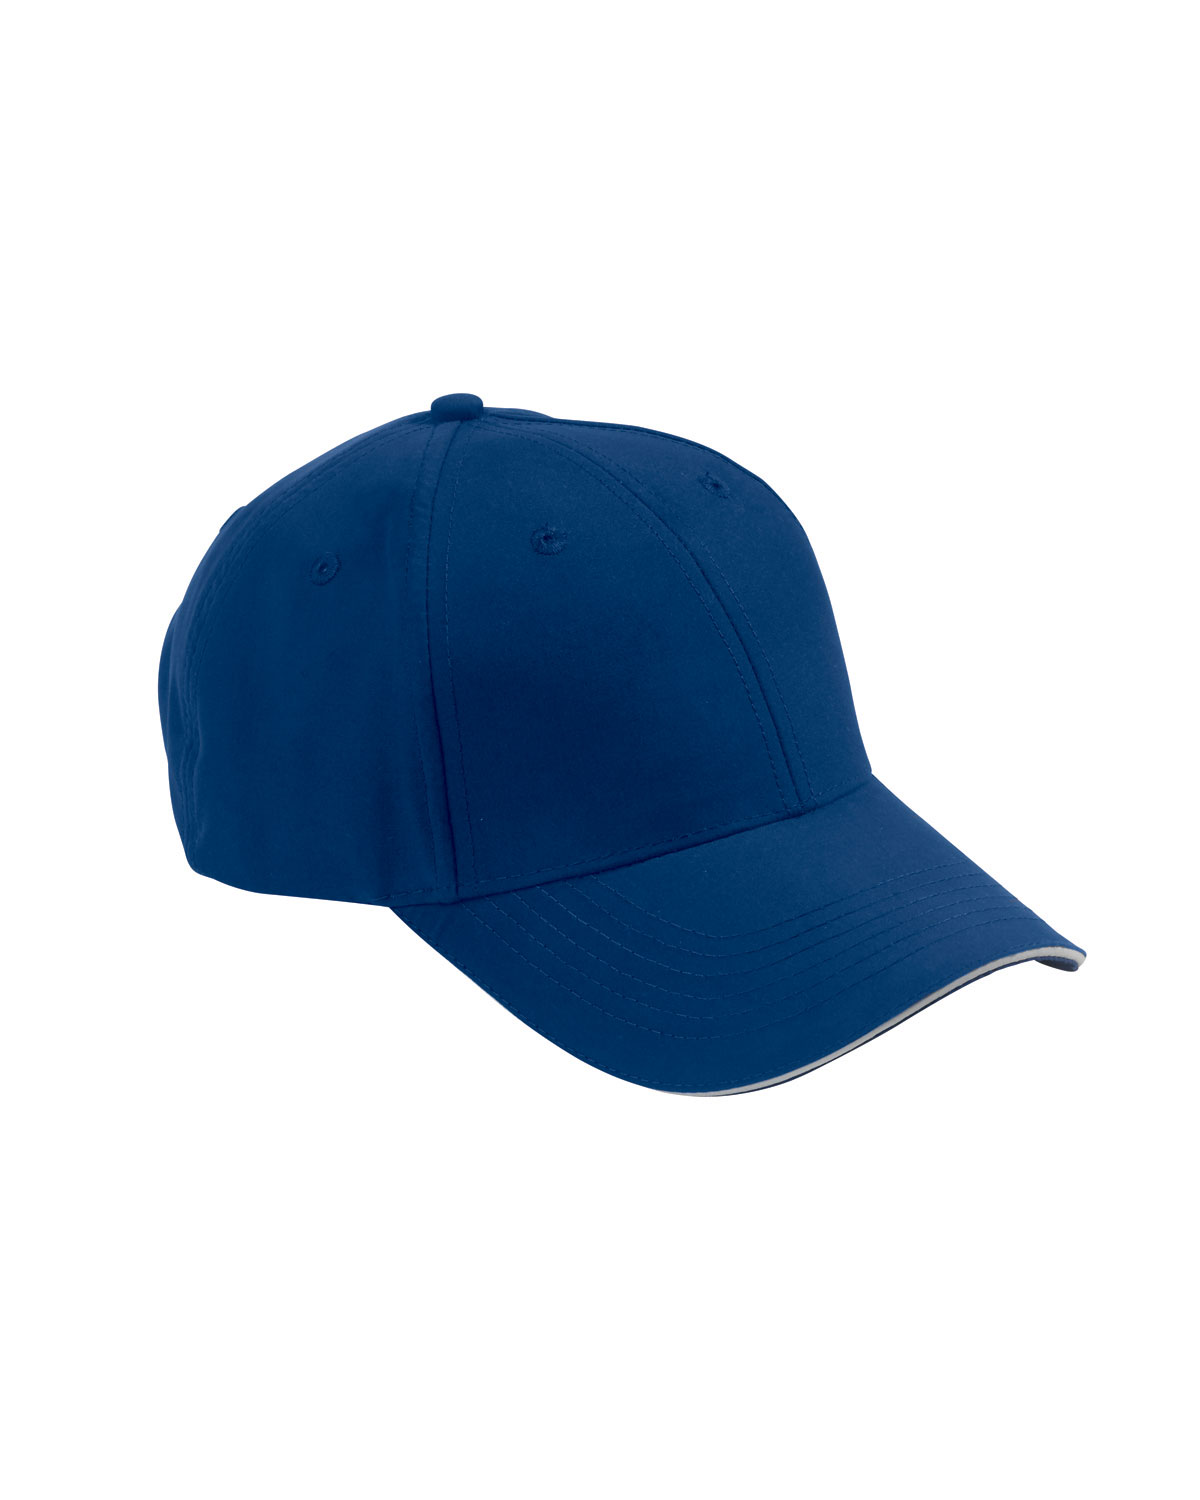 Adams Performer Cap